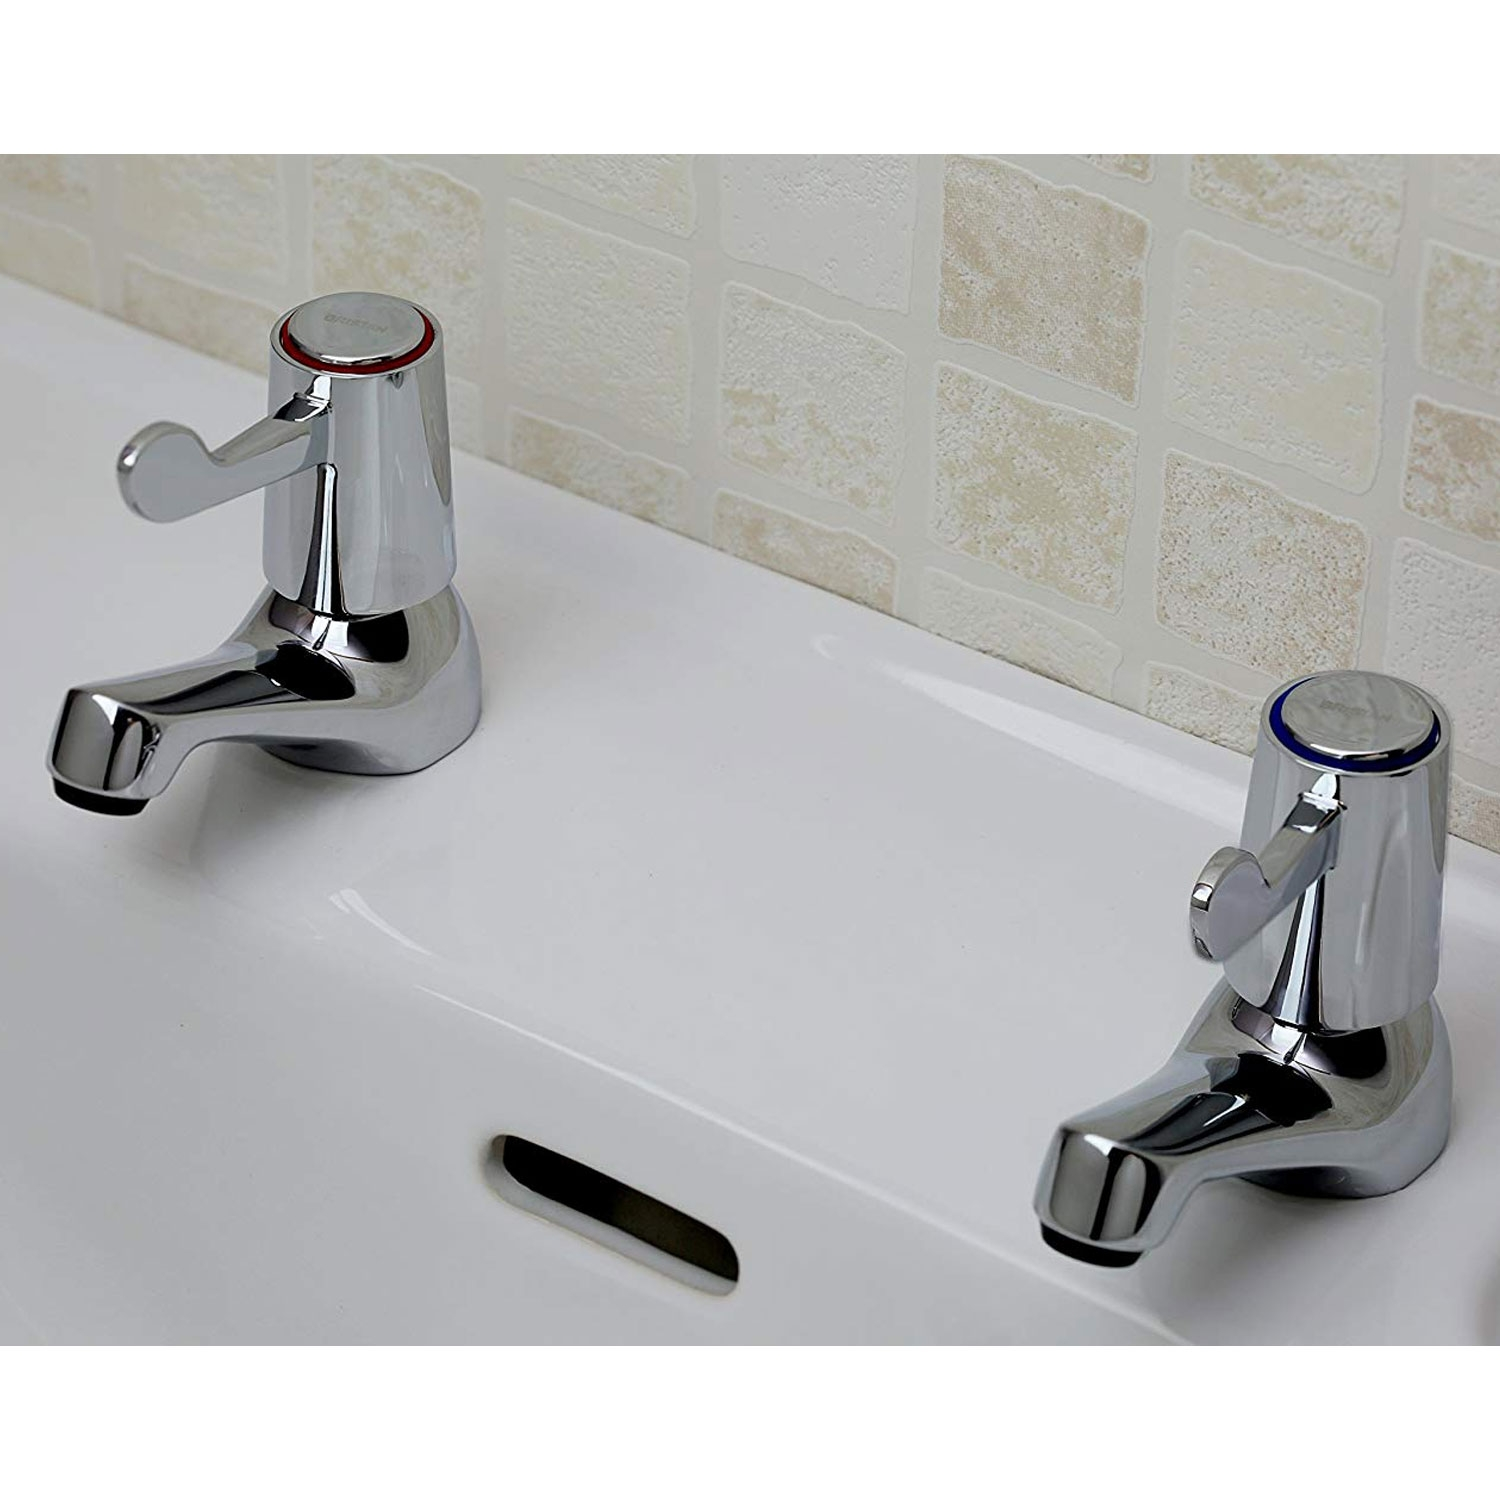 Bristan Value Lever Bath Taps Chrome Plated with Ceramic Disc Valves